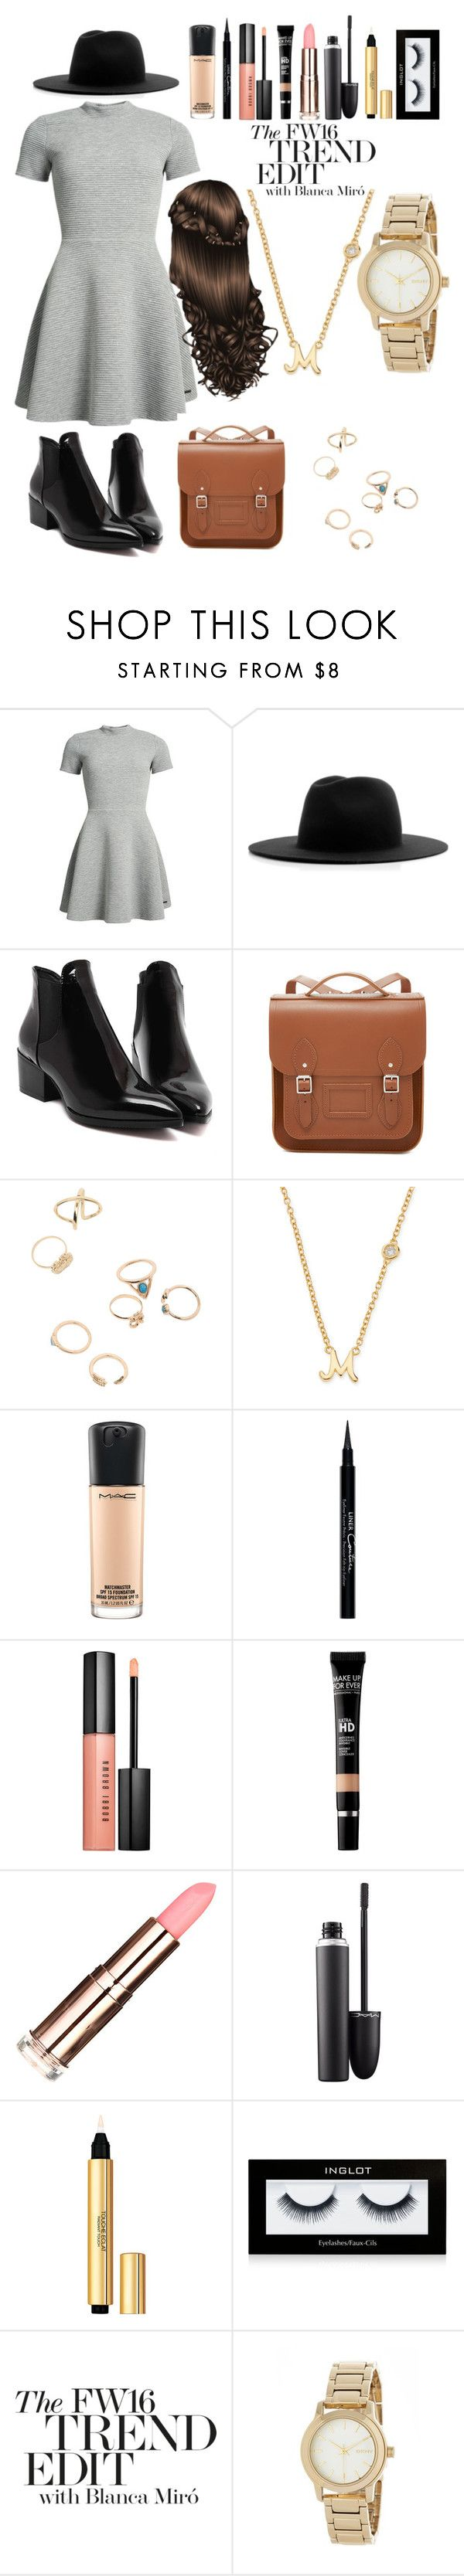 """""""Sunday morning outfit"""" by highhells1 ❤ liked on Polyvore featuring Superdry, Études, The Cambridge Satchel Company, Sydney Evan, MAC Cosmetics, Givenchy, Bobbi Brown Cosmetics, MAKE UP FOR EVER, Yves Saint Laurent and Inglot"""